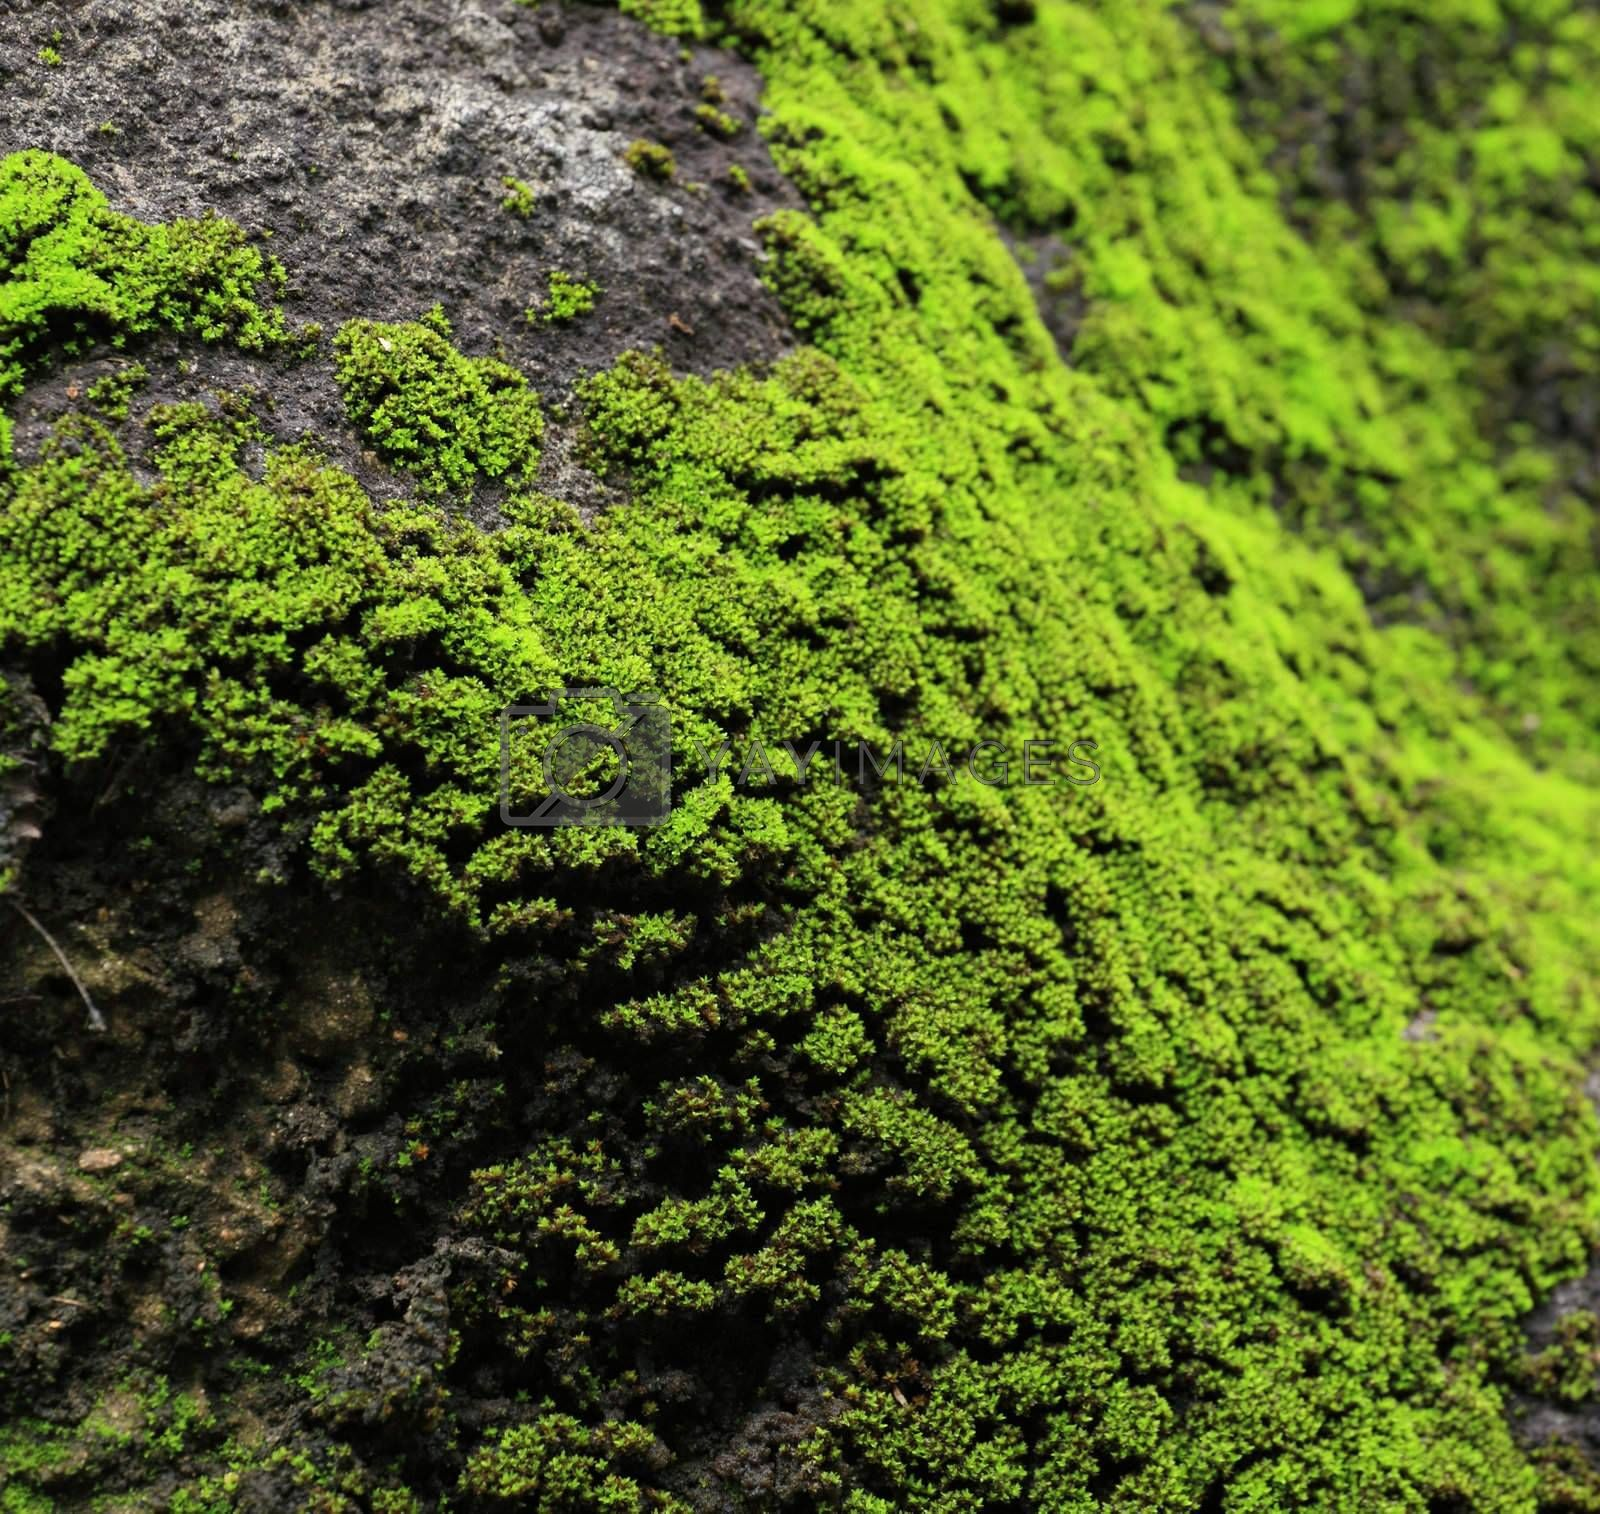 Royalty free image of moss on rock by leungchopan